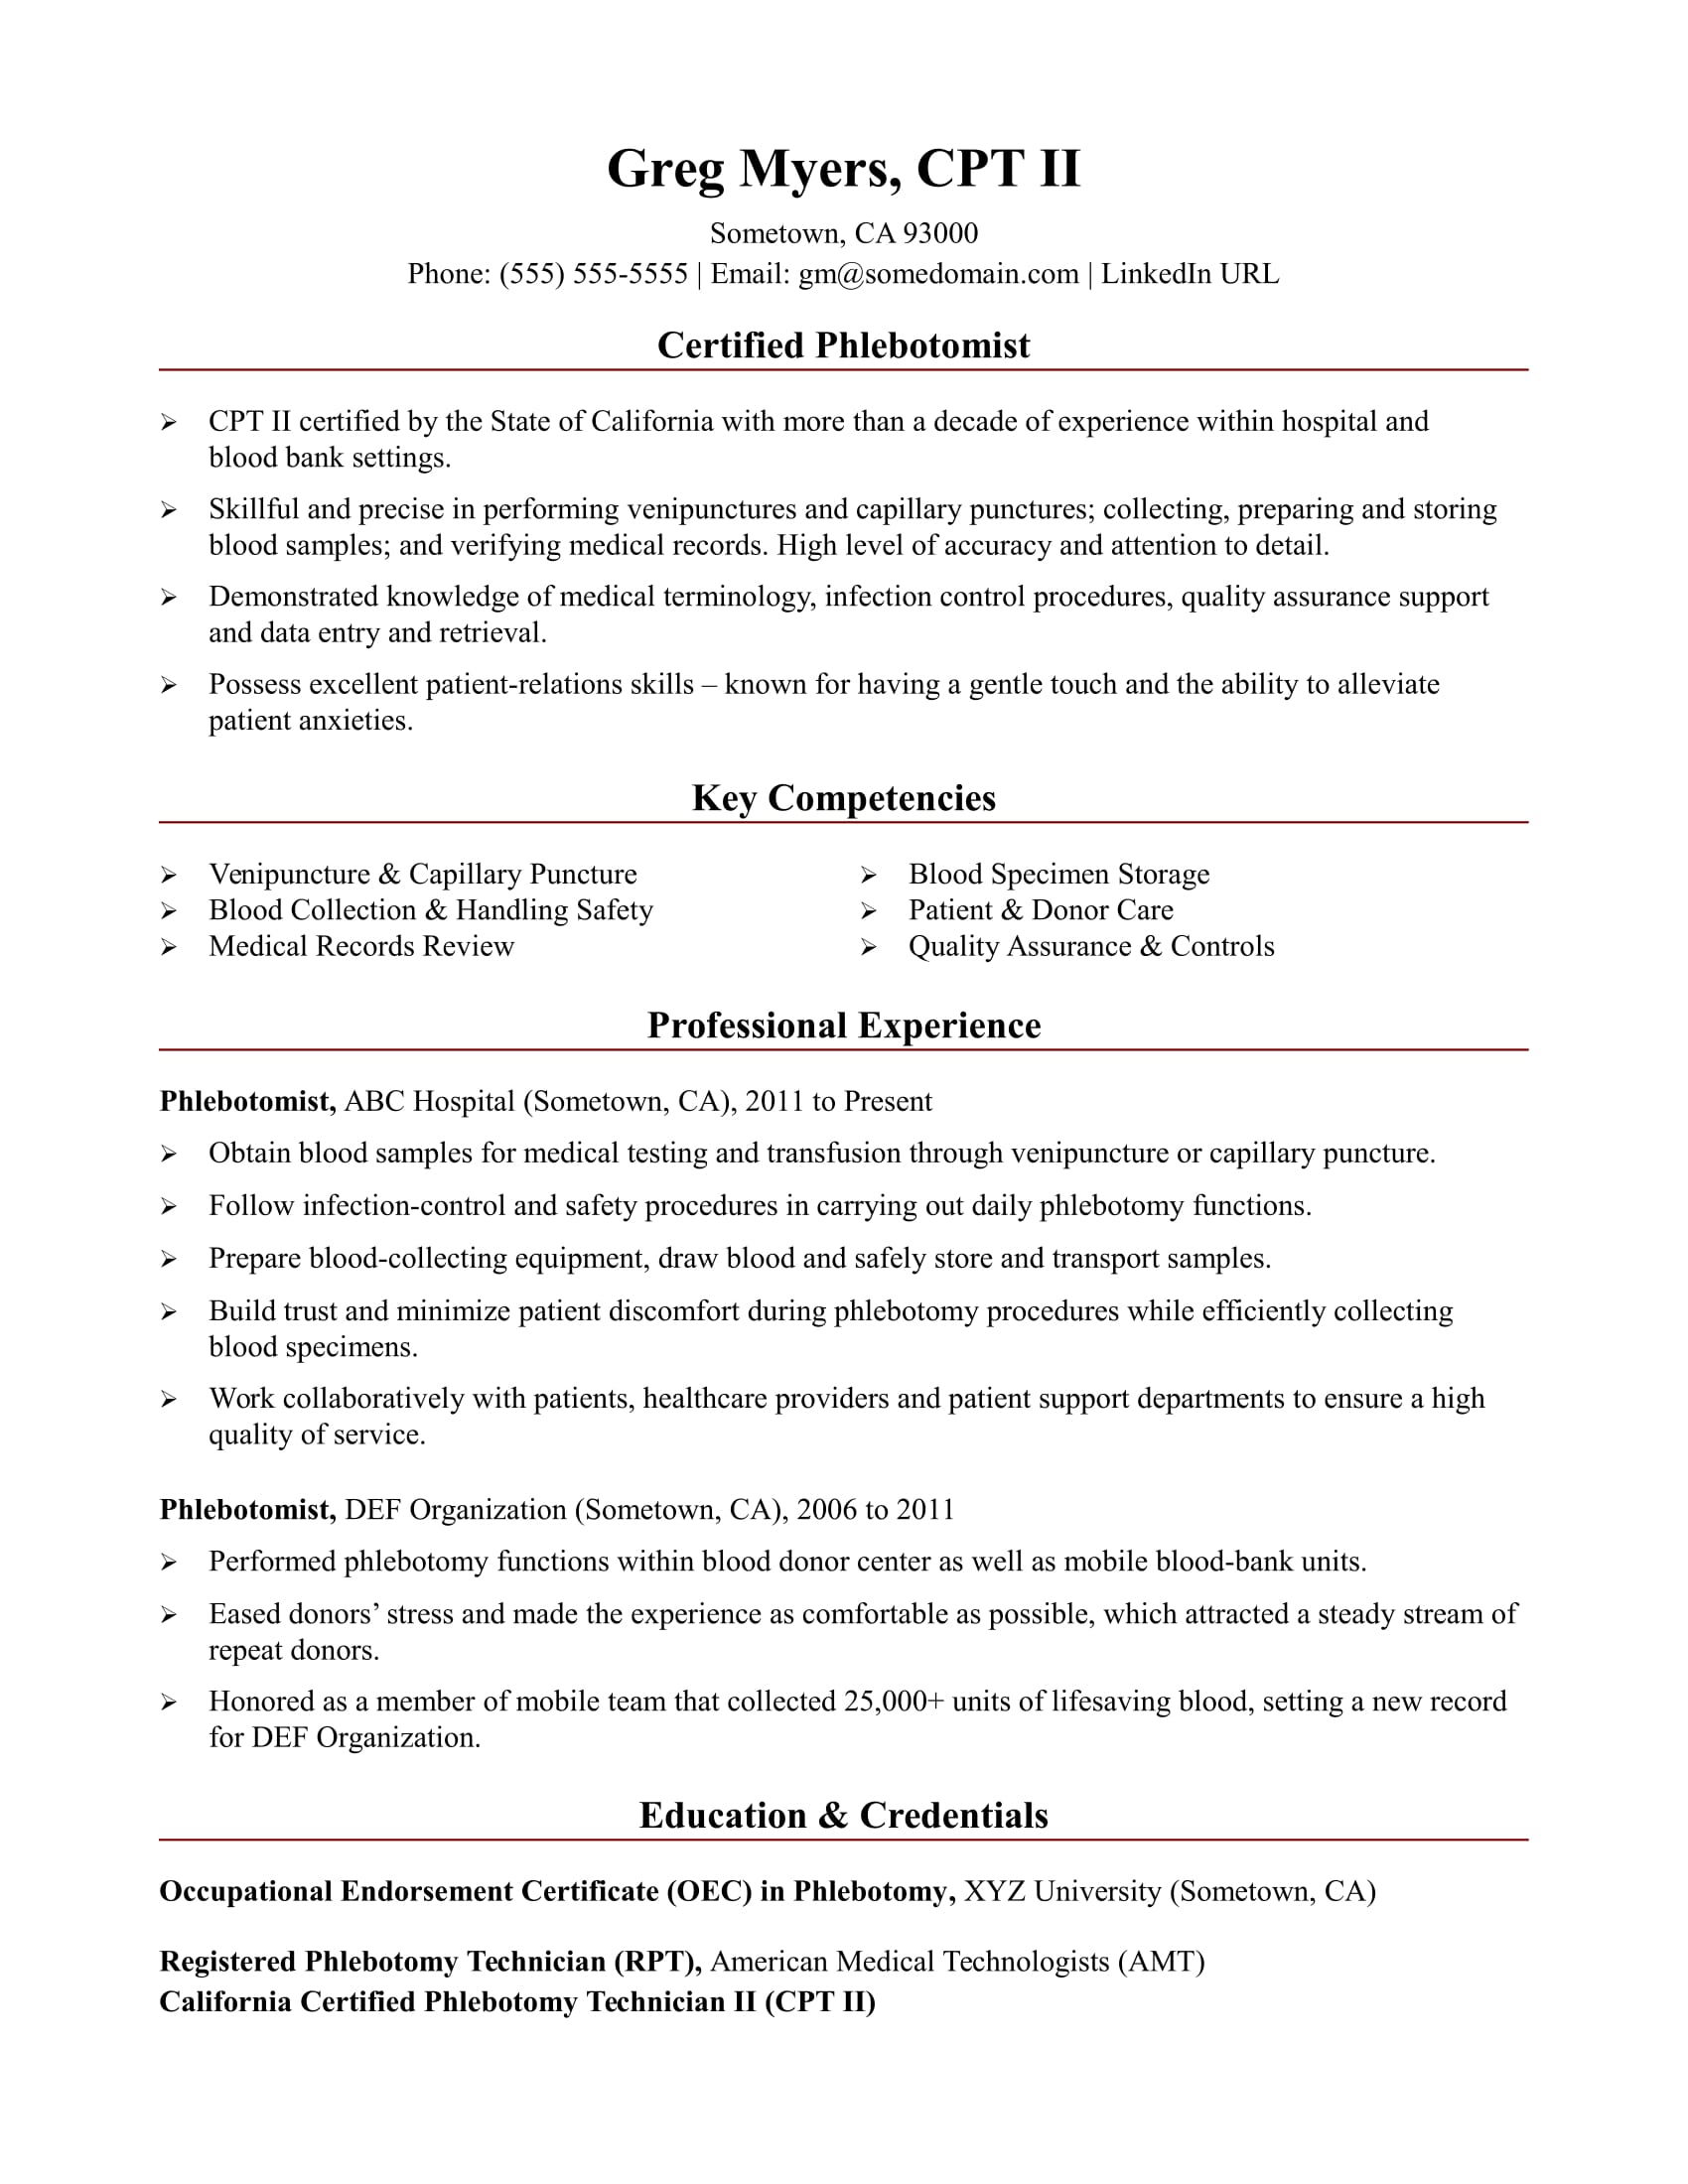 Phlebotomist Resume Sample Monstercom